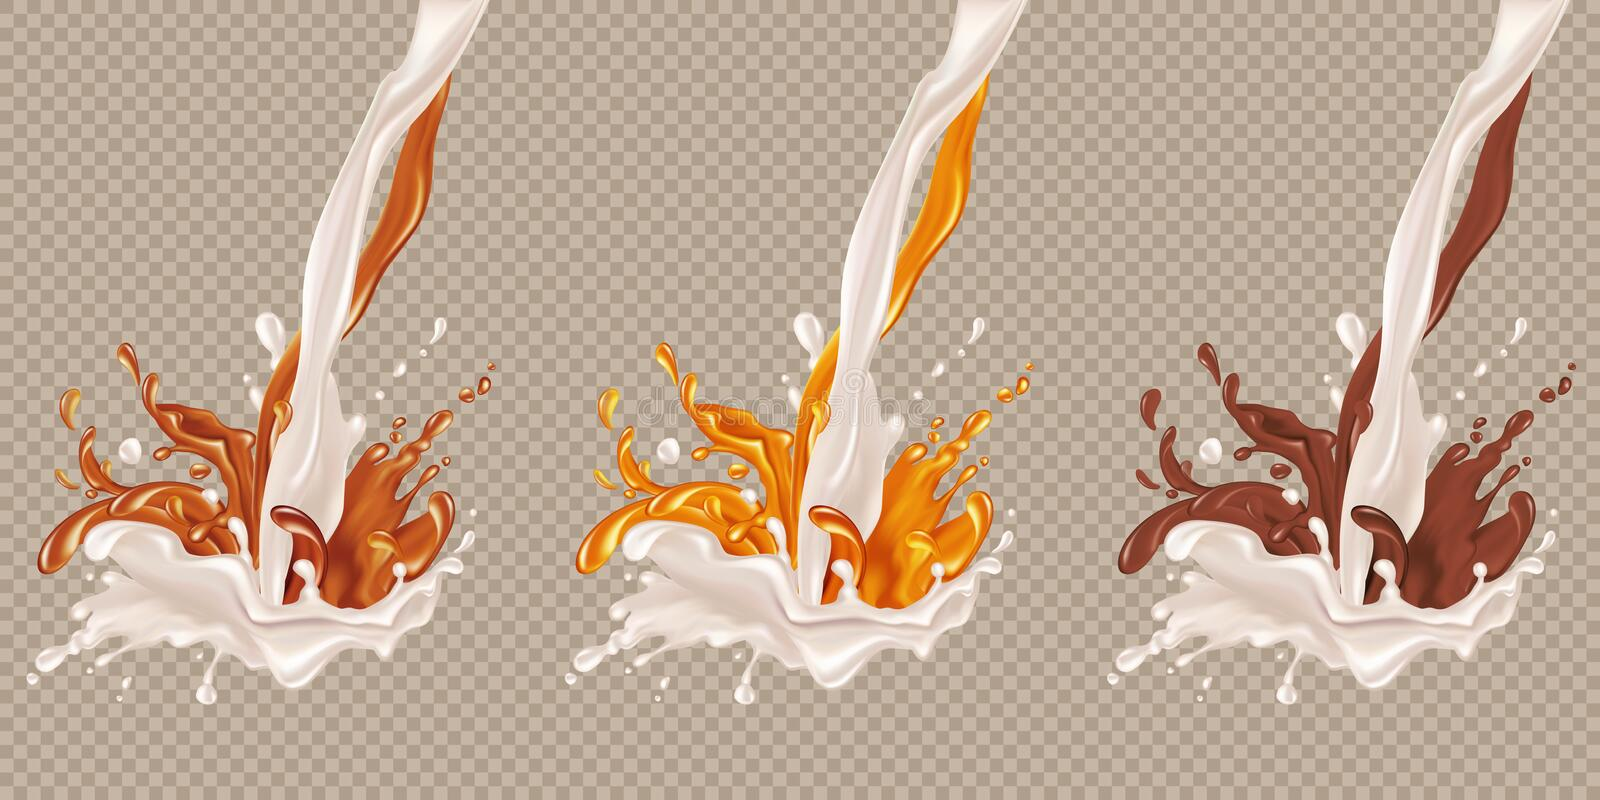 Milk and chocolate flow. vector illustration